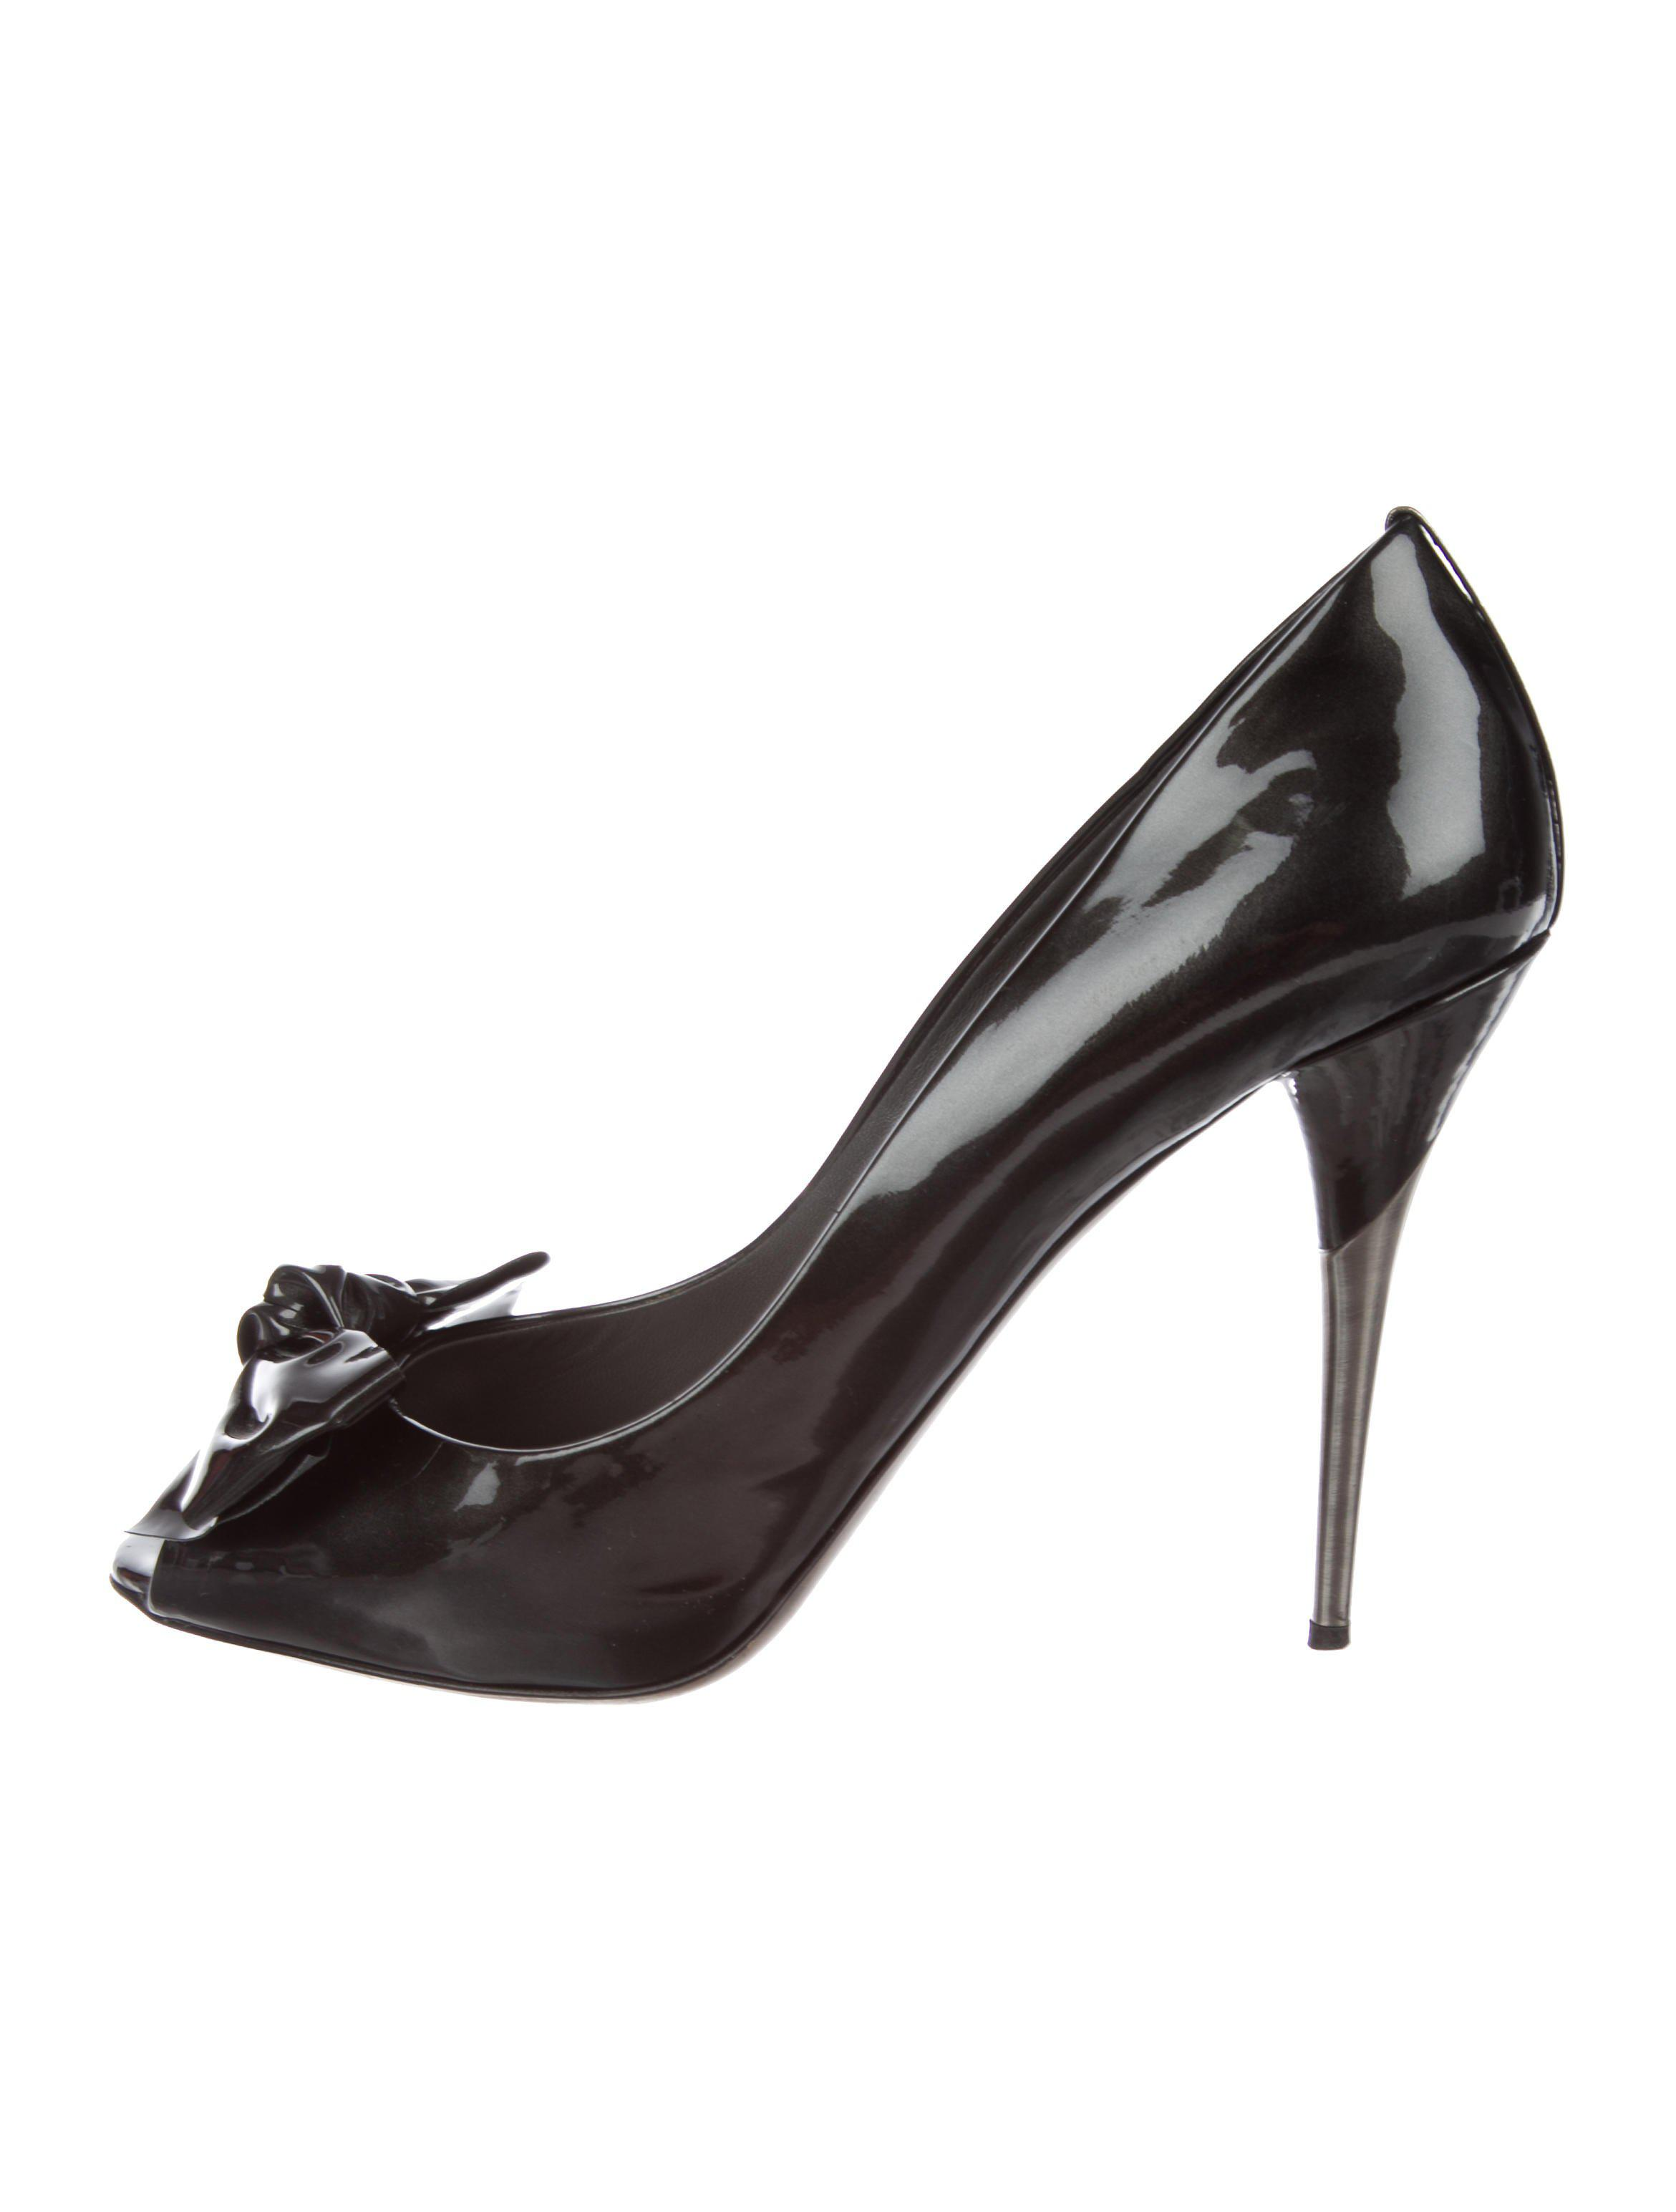 largest supplier for sale lowest price Miu Miu Leather Bow-Accented Pumps ebay cheap price discount best prices CiS2NW